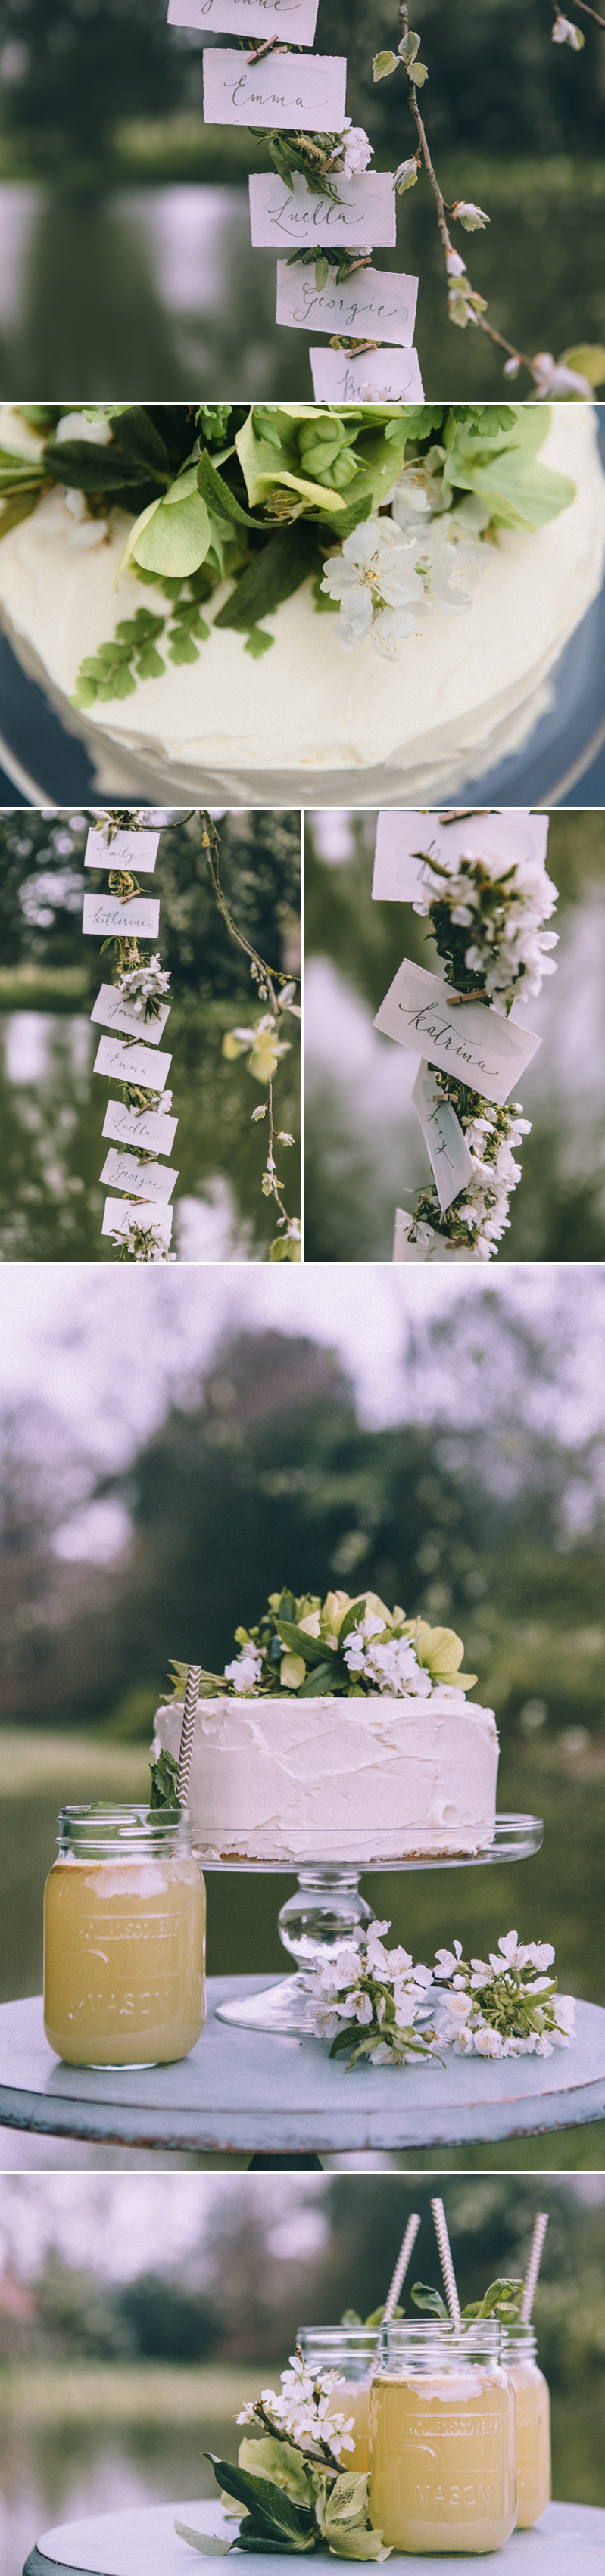 rustic-wedding-inspiration-rustic-romance-coco-editorial-a-new-beginning-rebecca-goddard-photography-layer3